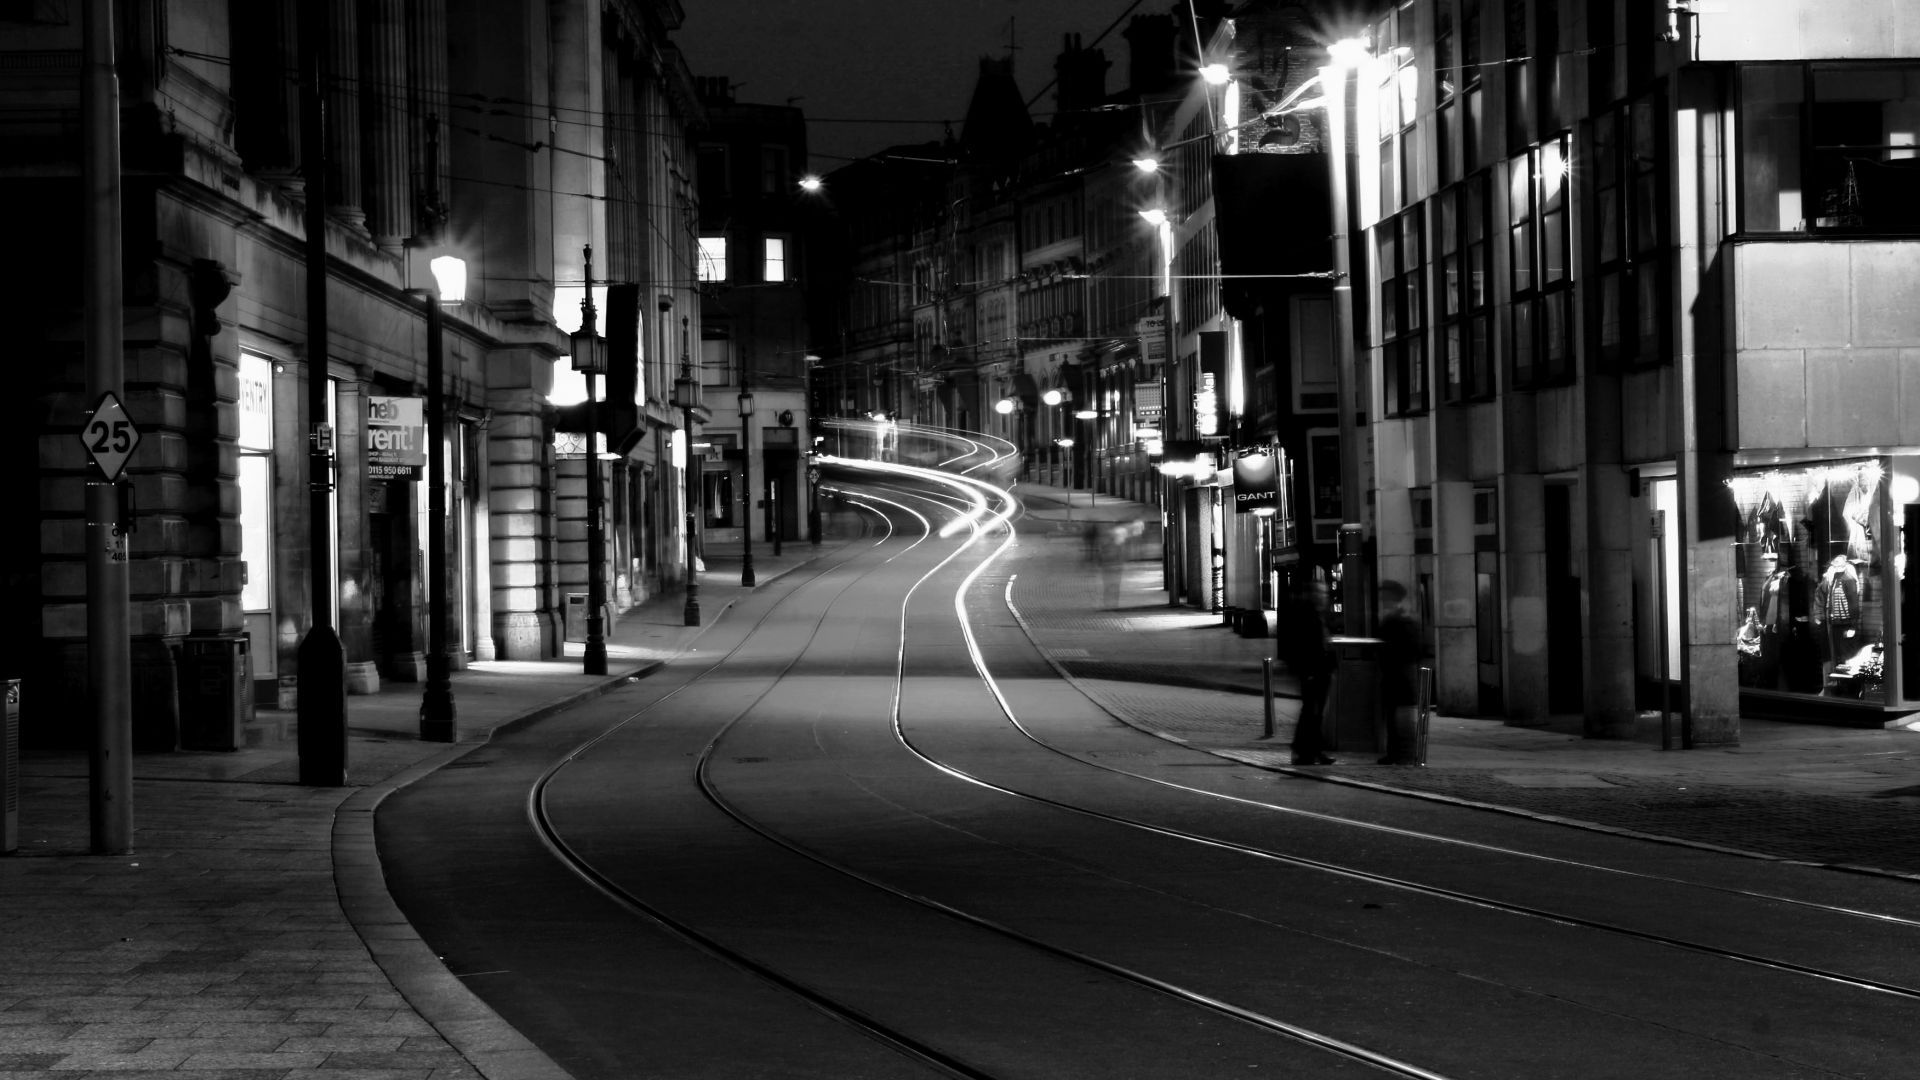 City Road Wallpaper High Resolution City Wallpaper Black And White City Black And White Wallpaper